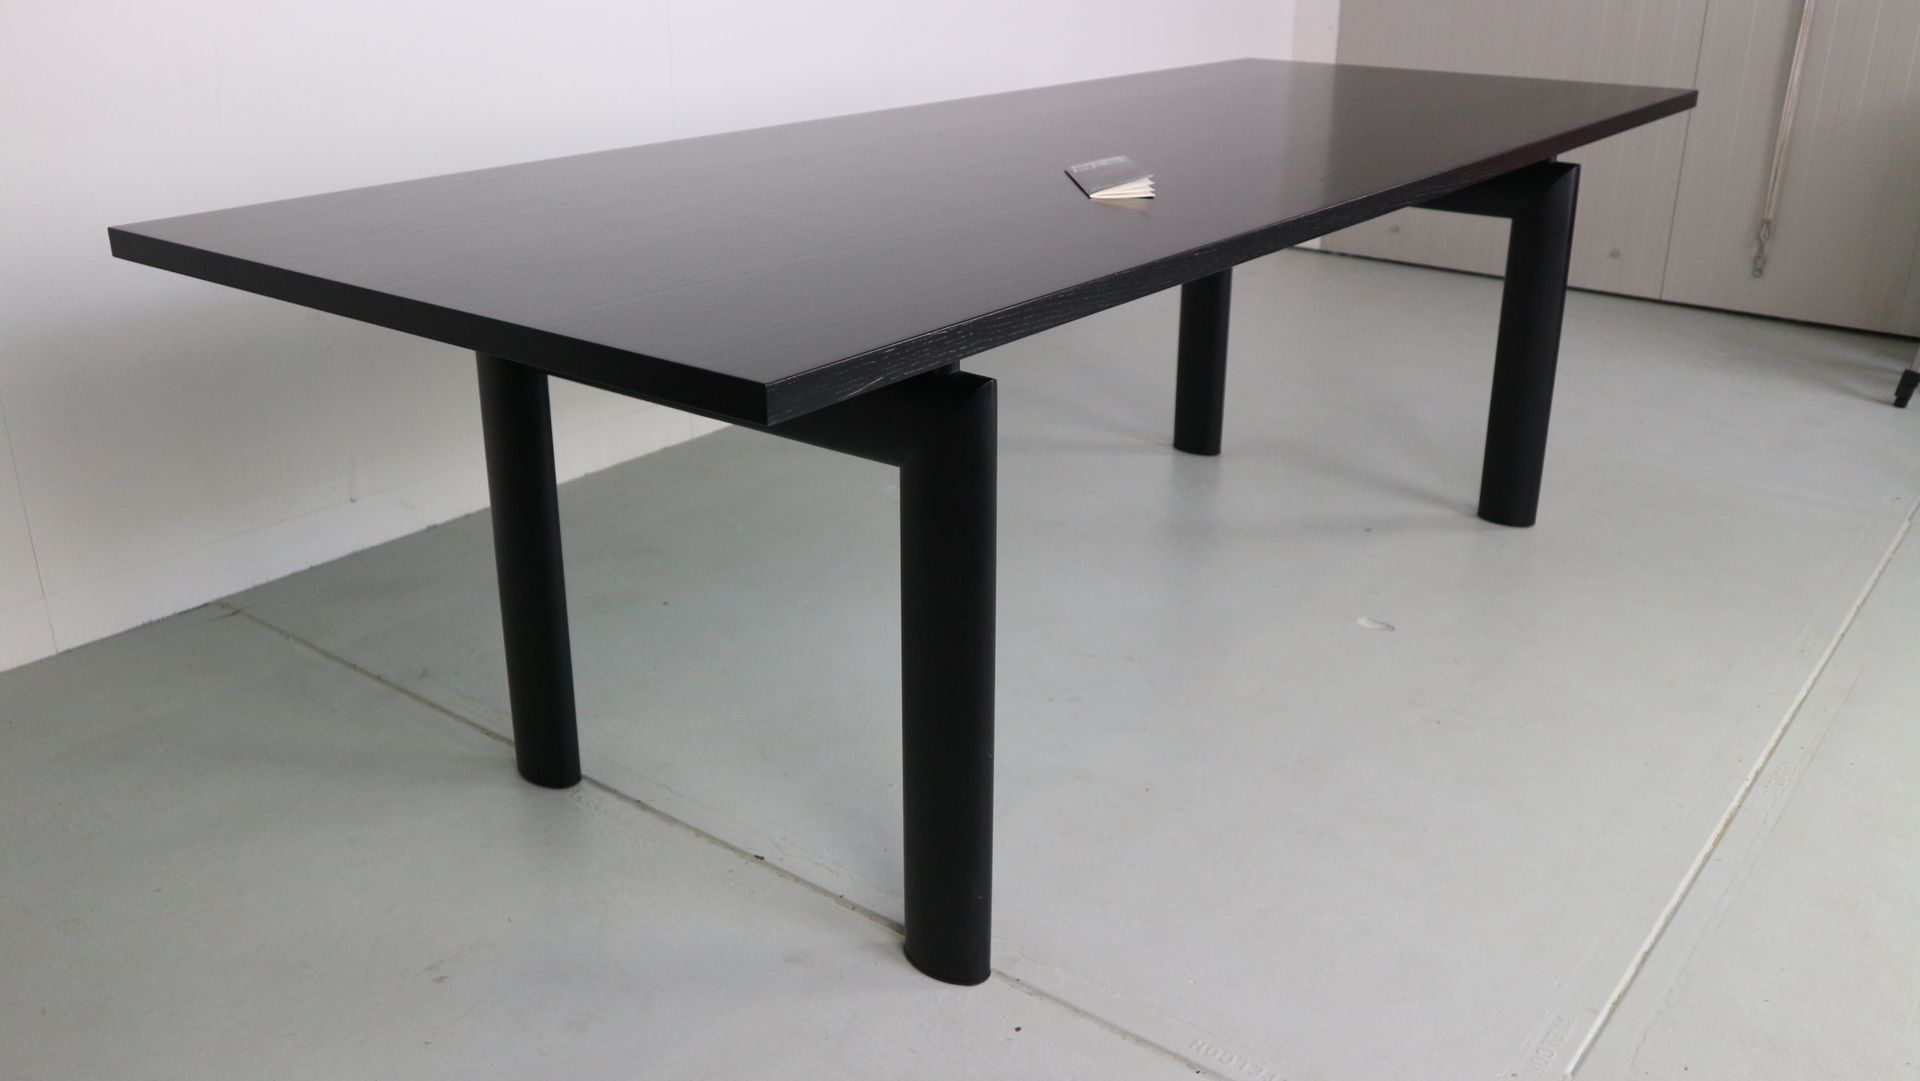 Glastisch Corbusier Lc6 Dining Table By Le Corbusier For Cassina 1974